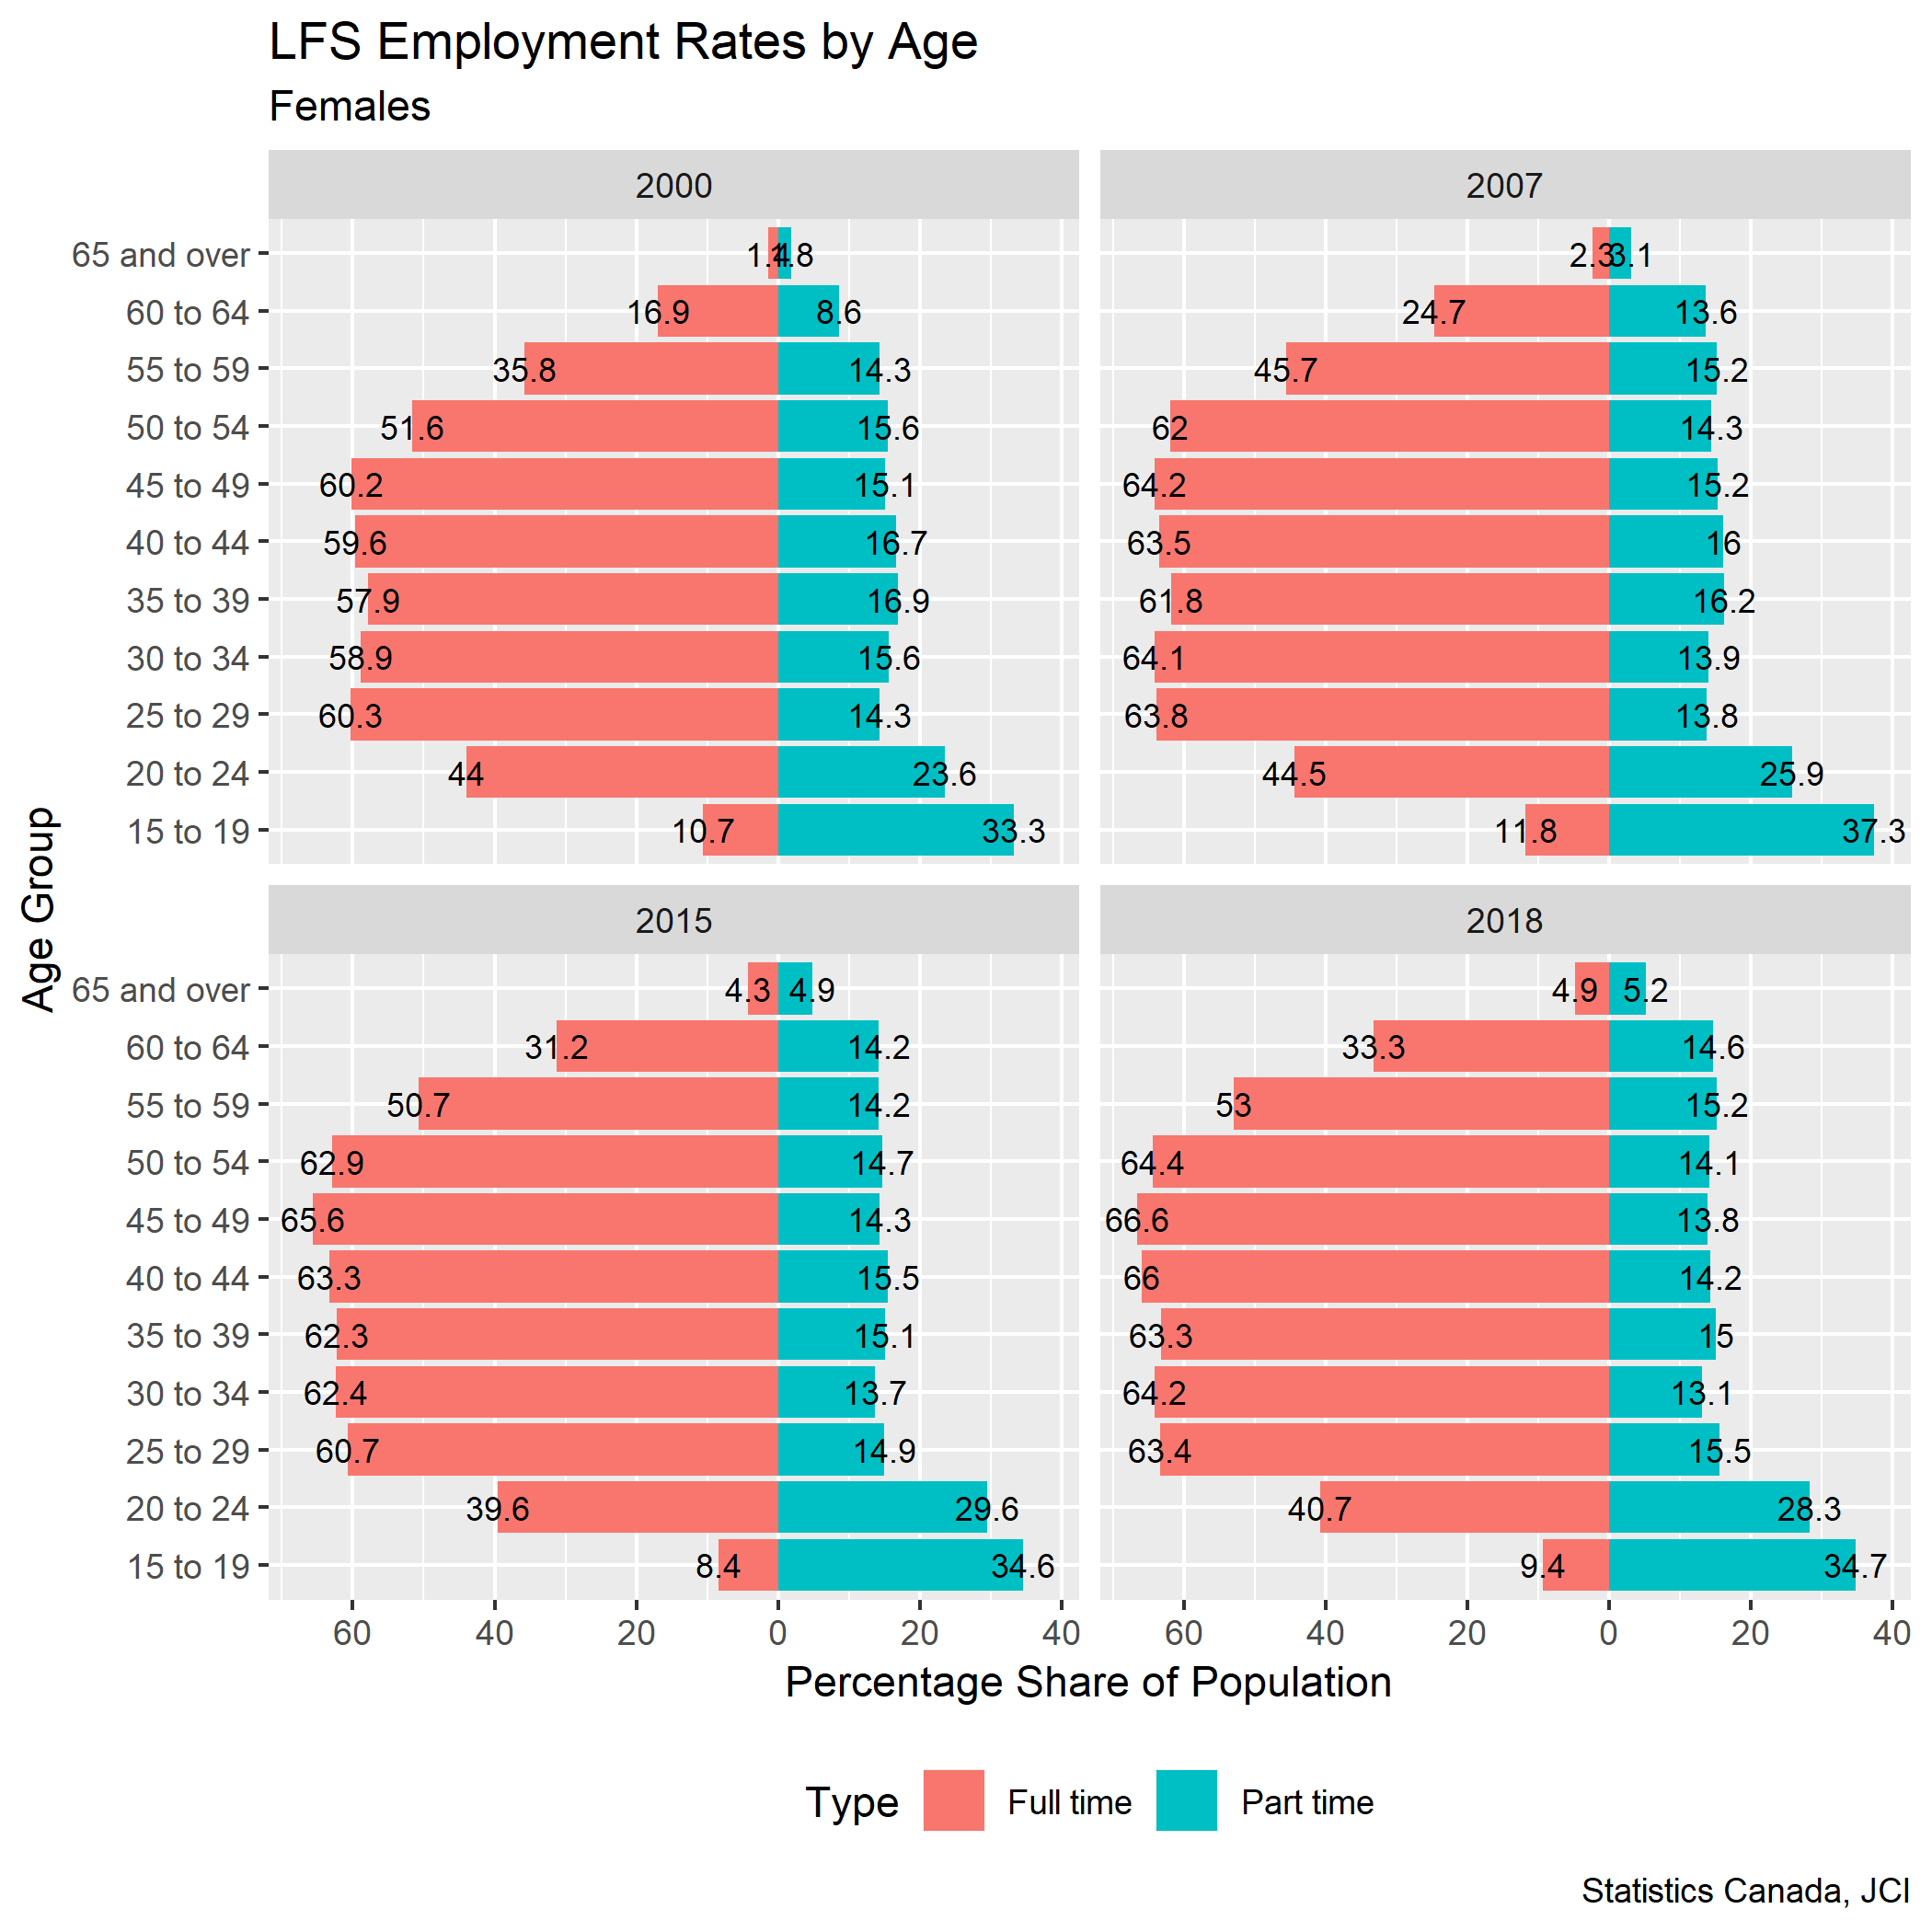 Females employment rate pyramids labels